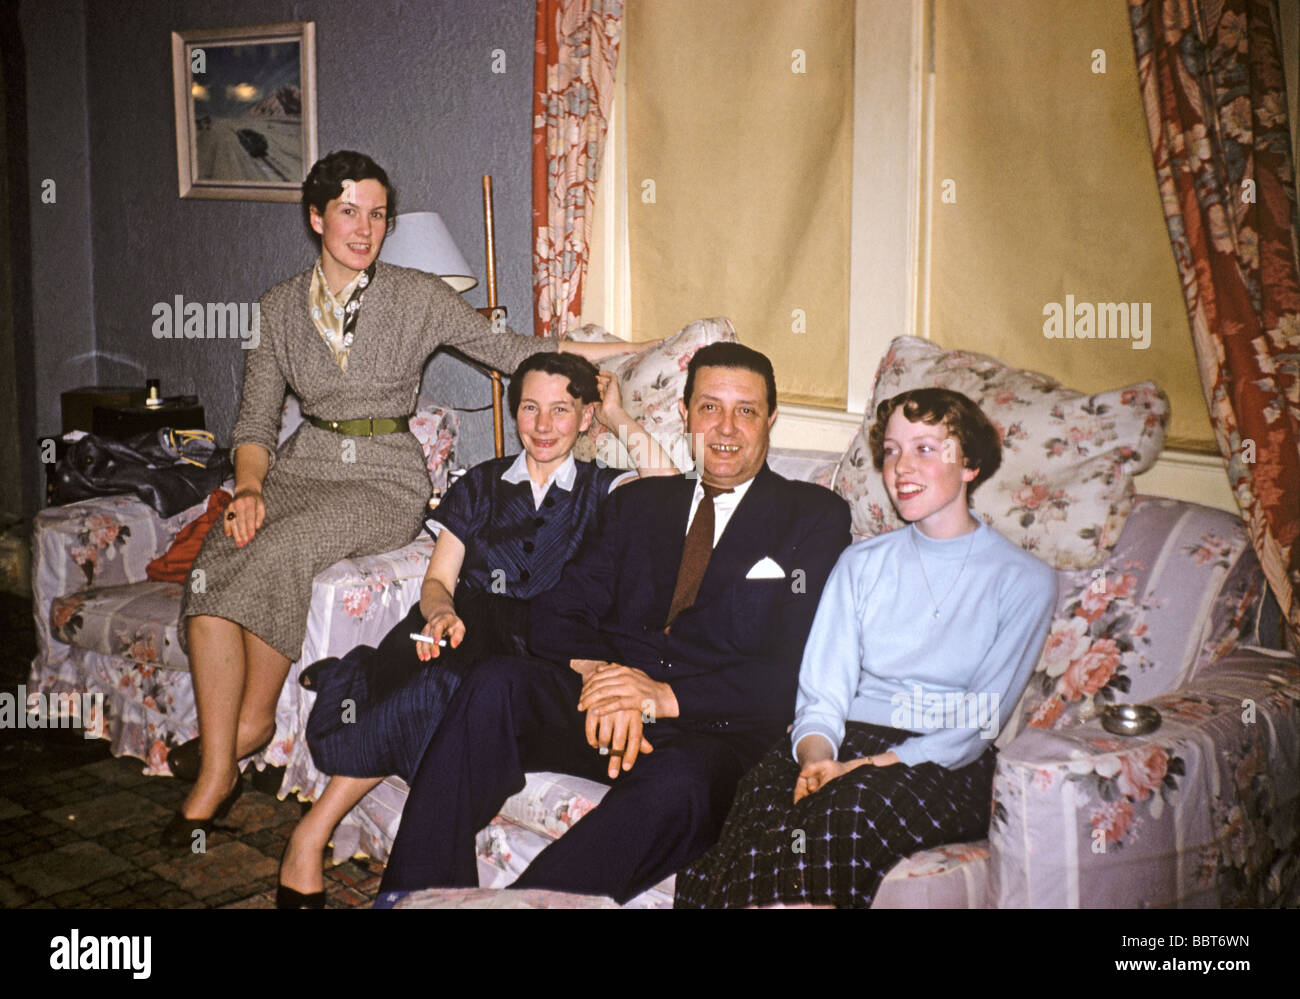 Interior with 1950s family - Stock Image